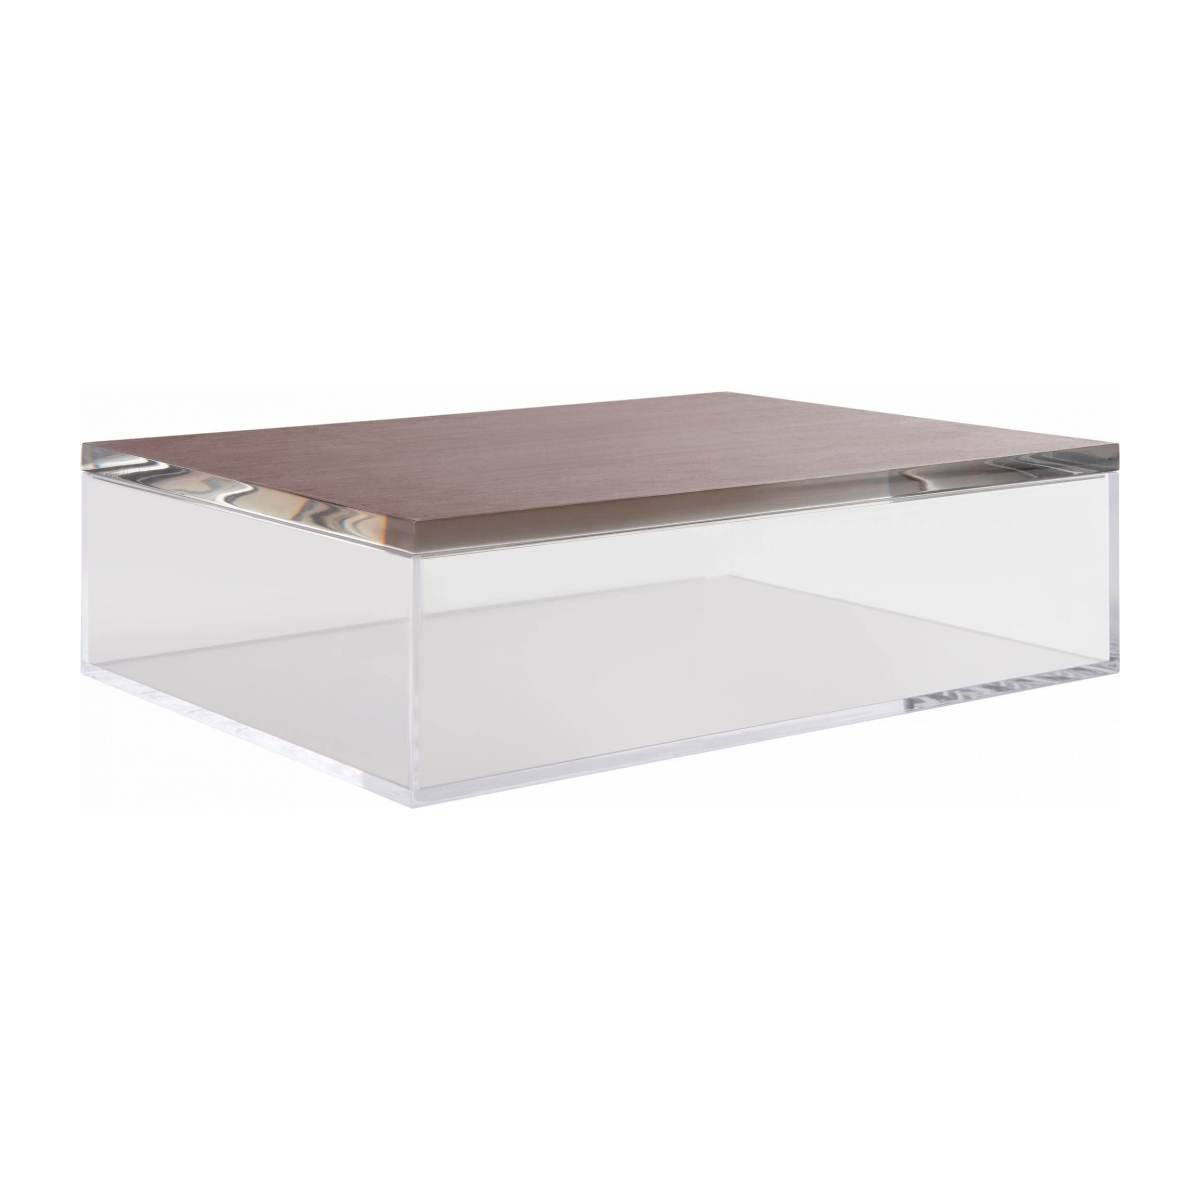 Box made of acrylic, transparent and silver n°1